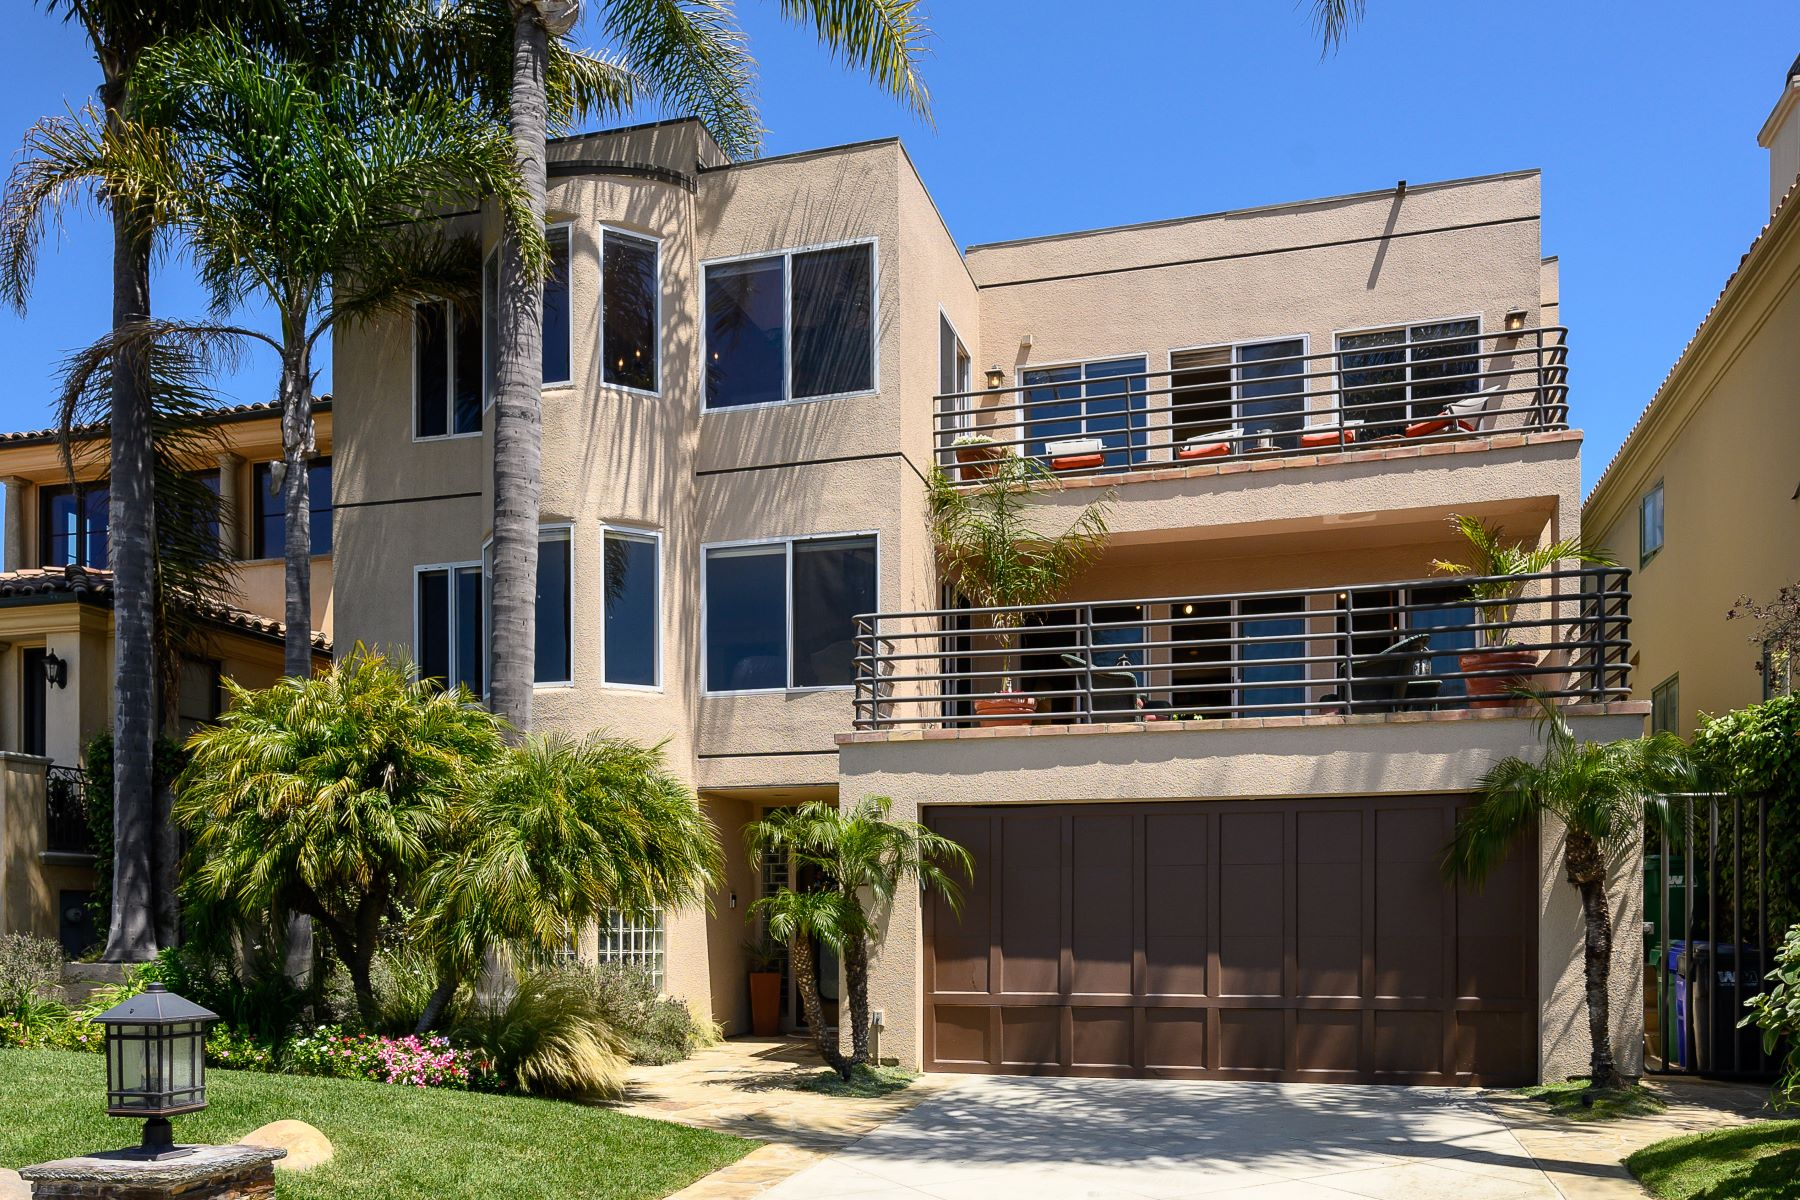 Single Family Homes for Active at 204 North Poinsettia Avenue, Manhattan Beach, CA 90266 204 North Poinsettia Avenue Manhattan Beach, California 90266 United States